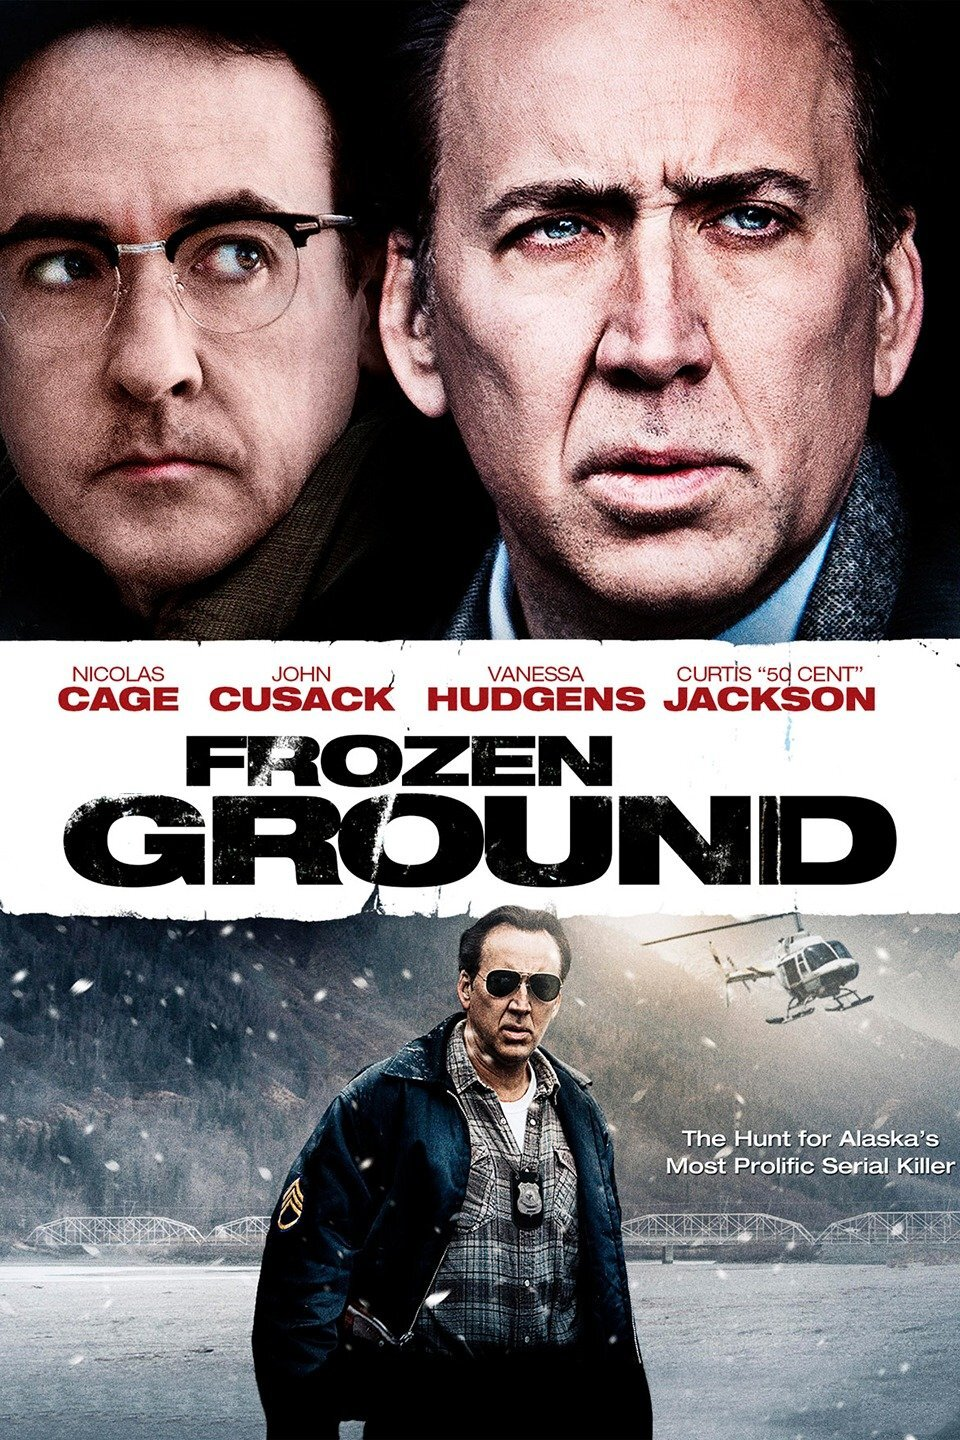 The Frozen Ground (2013) - Directed by: Scott WalkerStarring: Nicolas Cage, John Cusack, Vanessa HudgensRated: R for Violent Content, Sexuality/Nudity, Language and Drug UseRunning Time: 1h 45mTMM Score: 2.5 StarsSTRENGTHS: Nic Cage, Atmosphere, True StoryWEAKNESSES: Vanessa Hudgens, Cinematography, Safe Writing